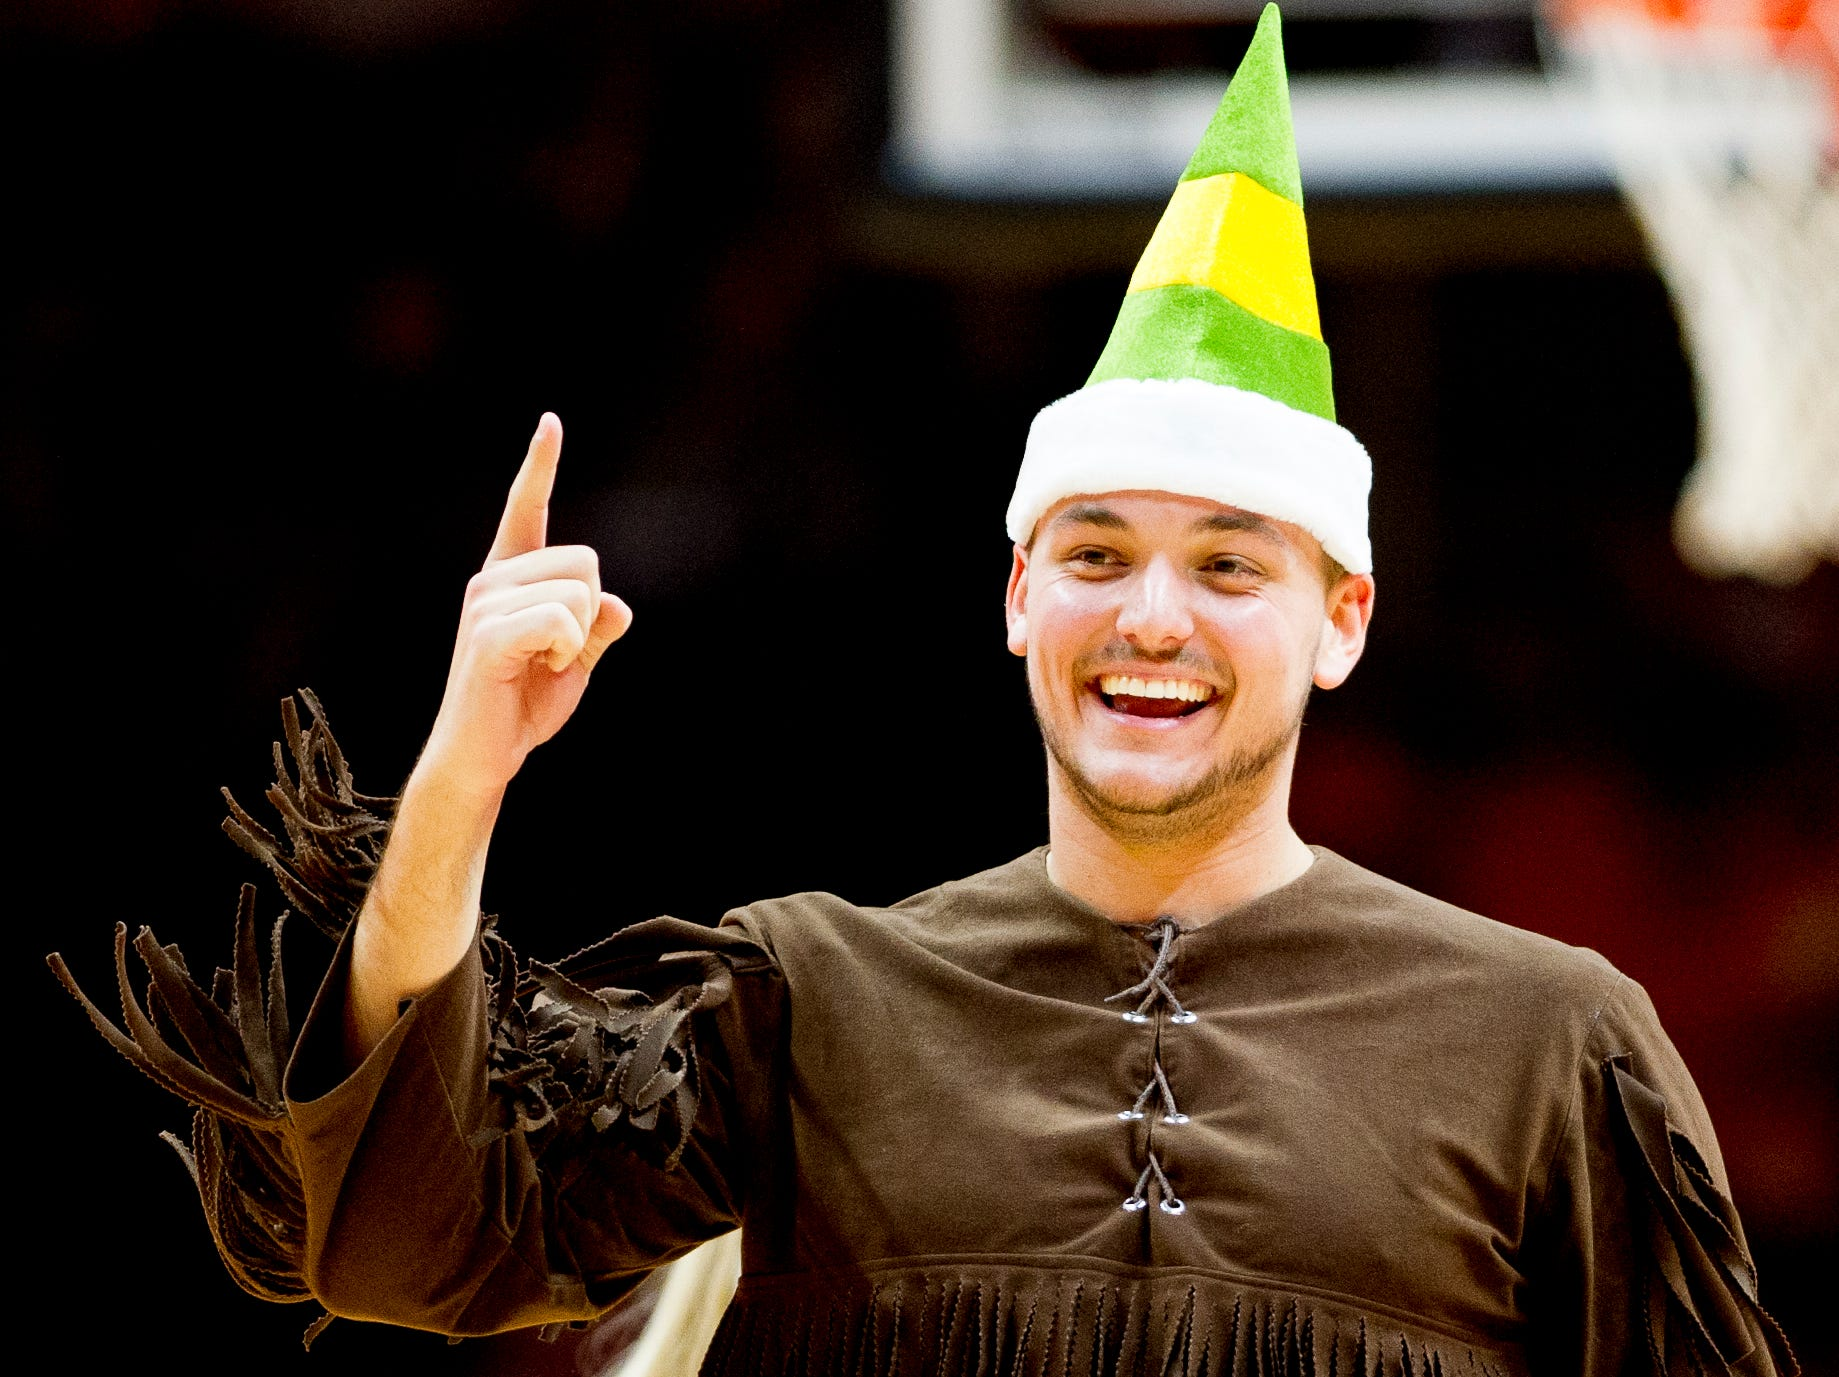 The Volunteer mascot wears an elf hat during a game between Tennessee and Wake Forest at Thompson-Boling Arena in Knoxville, Tennessee on Saturday, December 22, 2018.